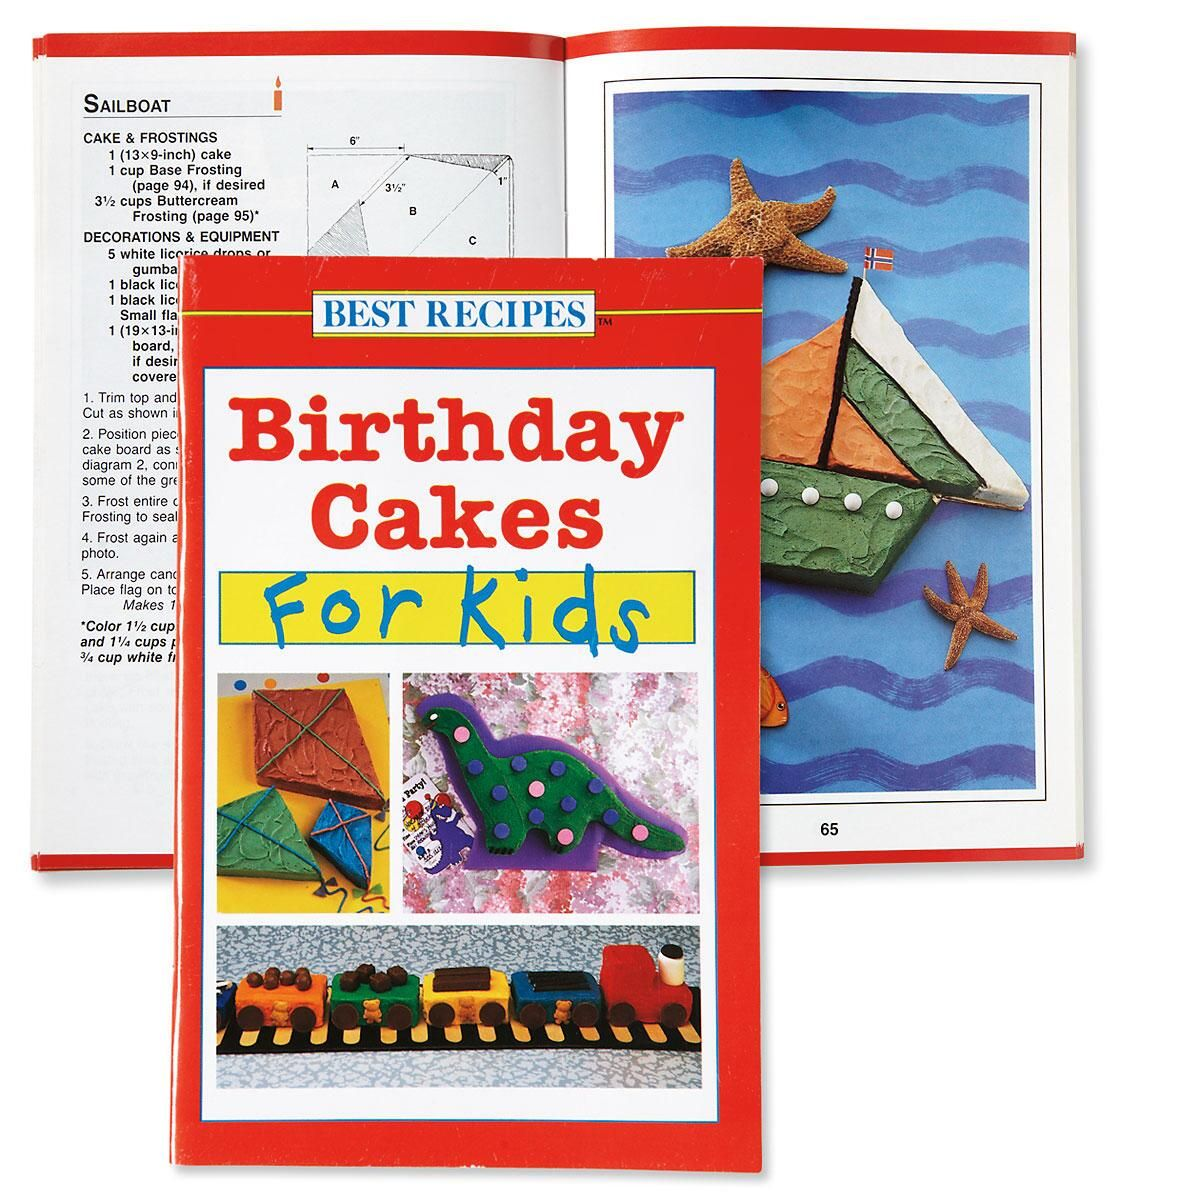 Birthday Cakes for Kids Recipe Book